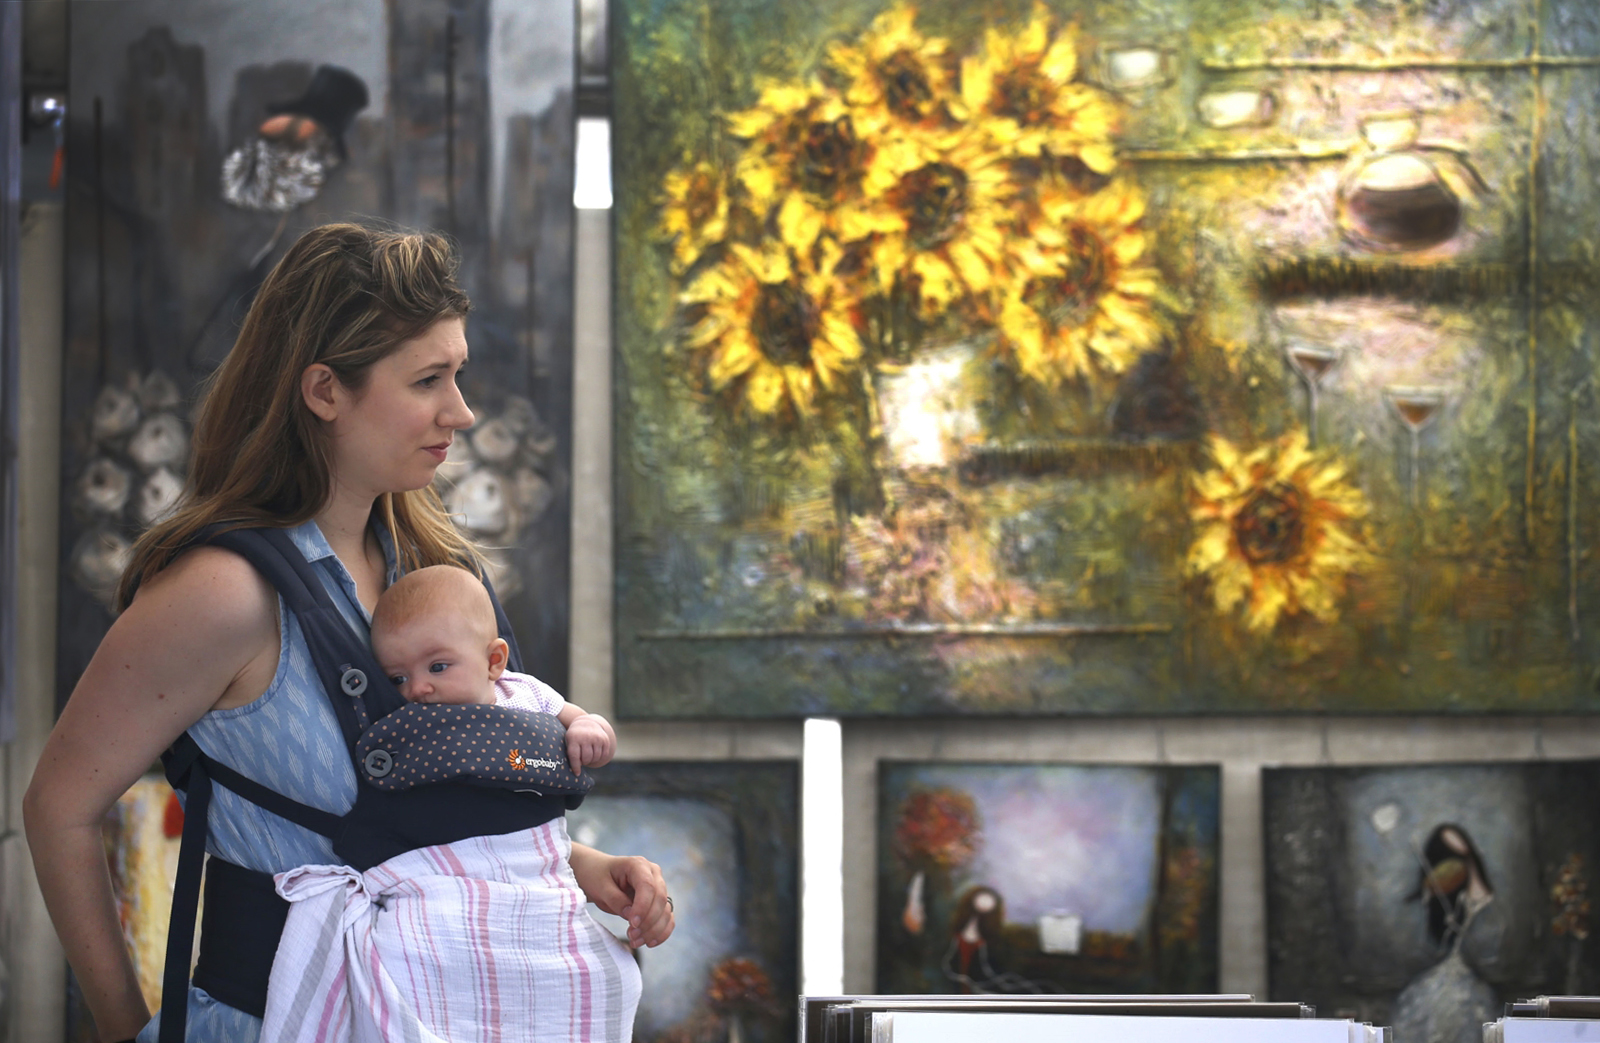 Art at the Allentown Art Festival.  A recent report stated that cultural organizations draw 896,109 tourists per year to the area. (Robert Kirkham/Buffalo News)